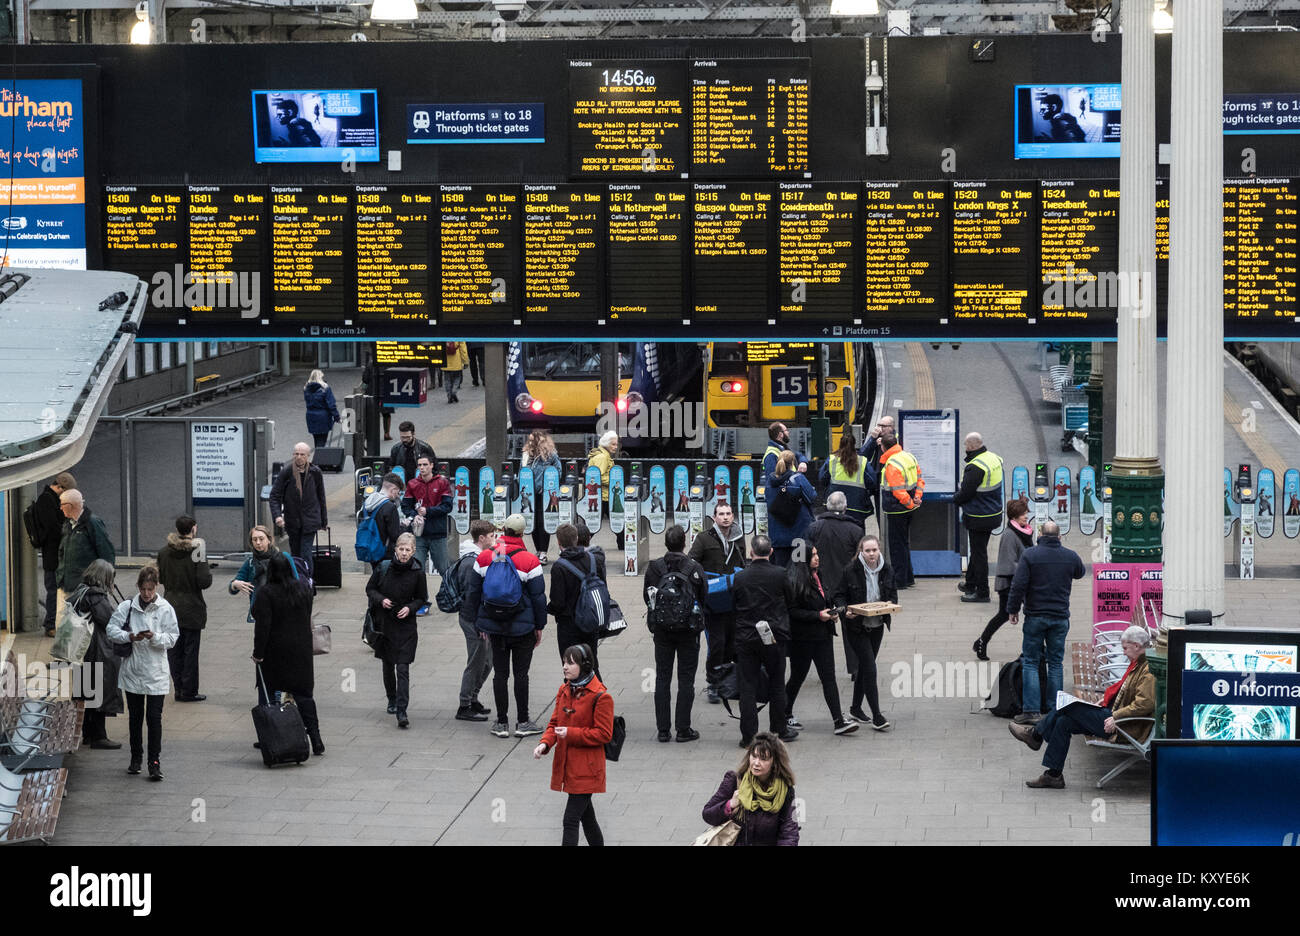 Interior view of Waverley Railway Station in Edinburgh, Scotland, United Kingdom - Stock Image